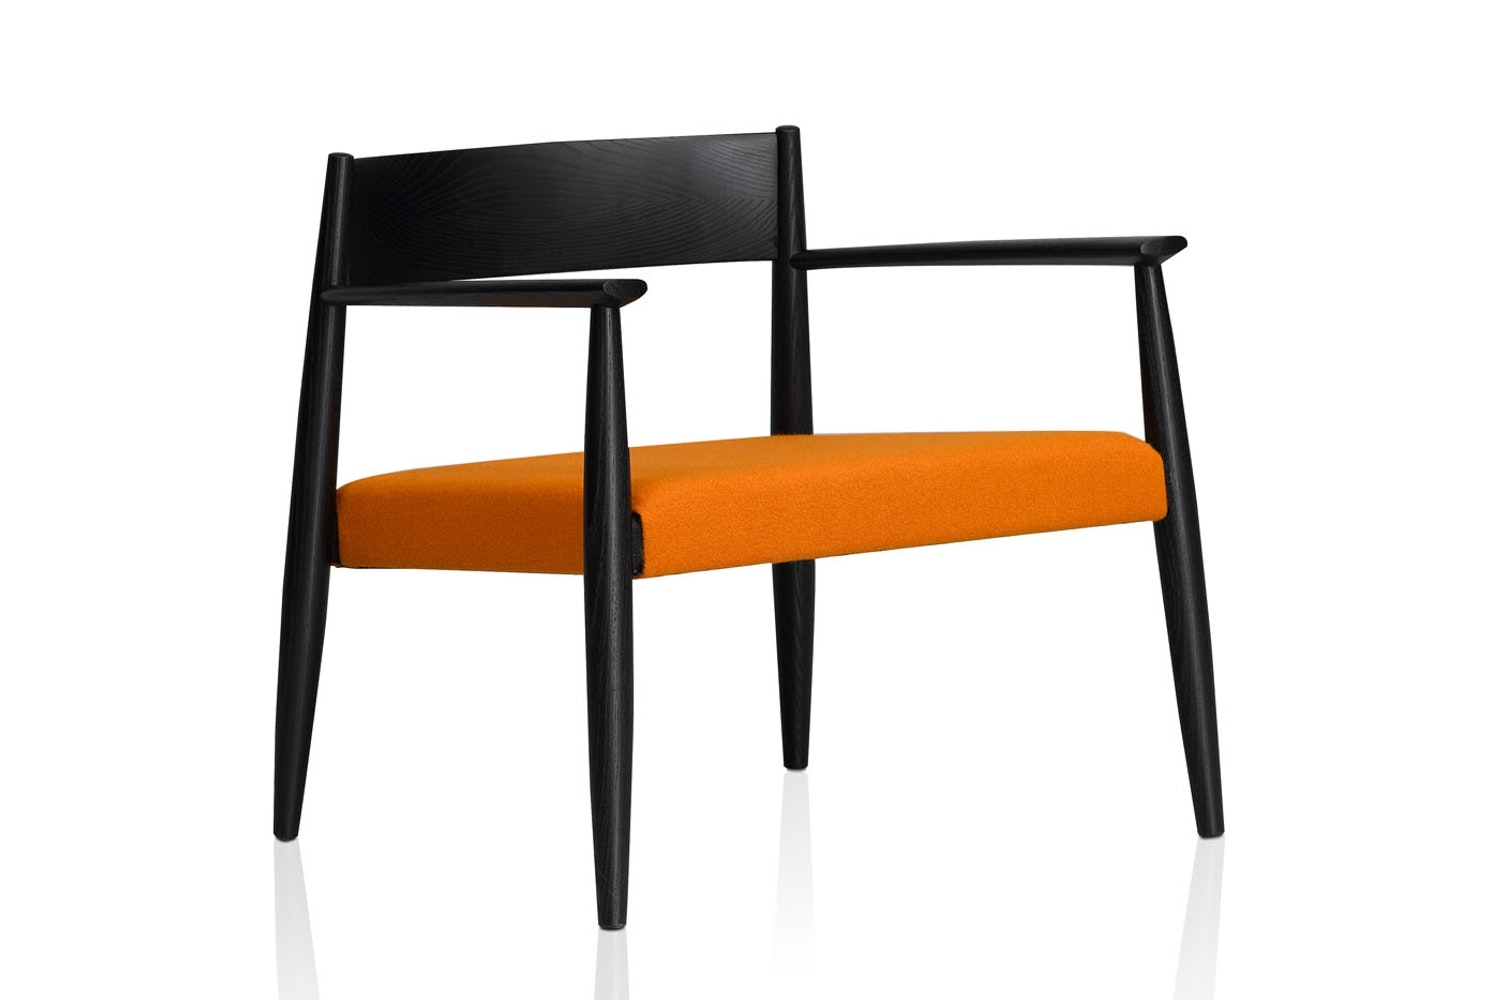 Ghiaccio Armchair by Piero Lissoni for Porro